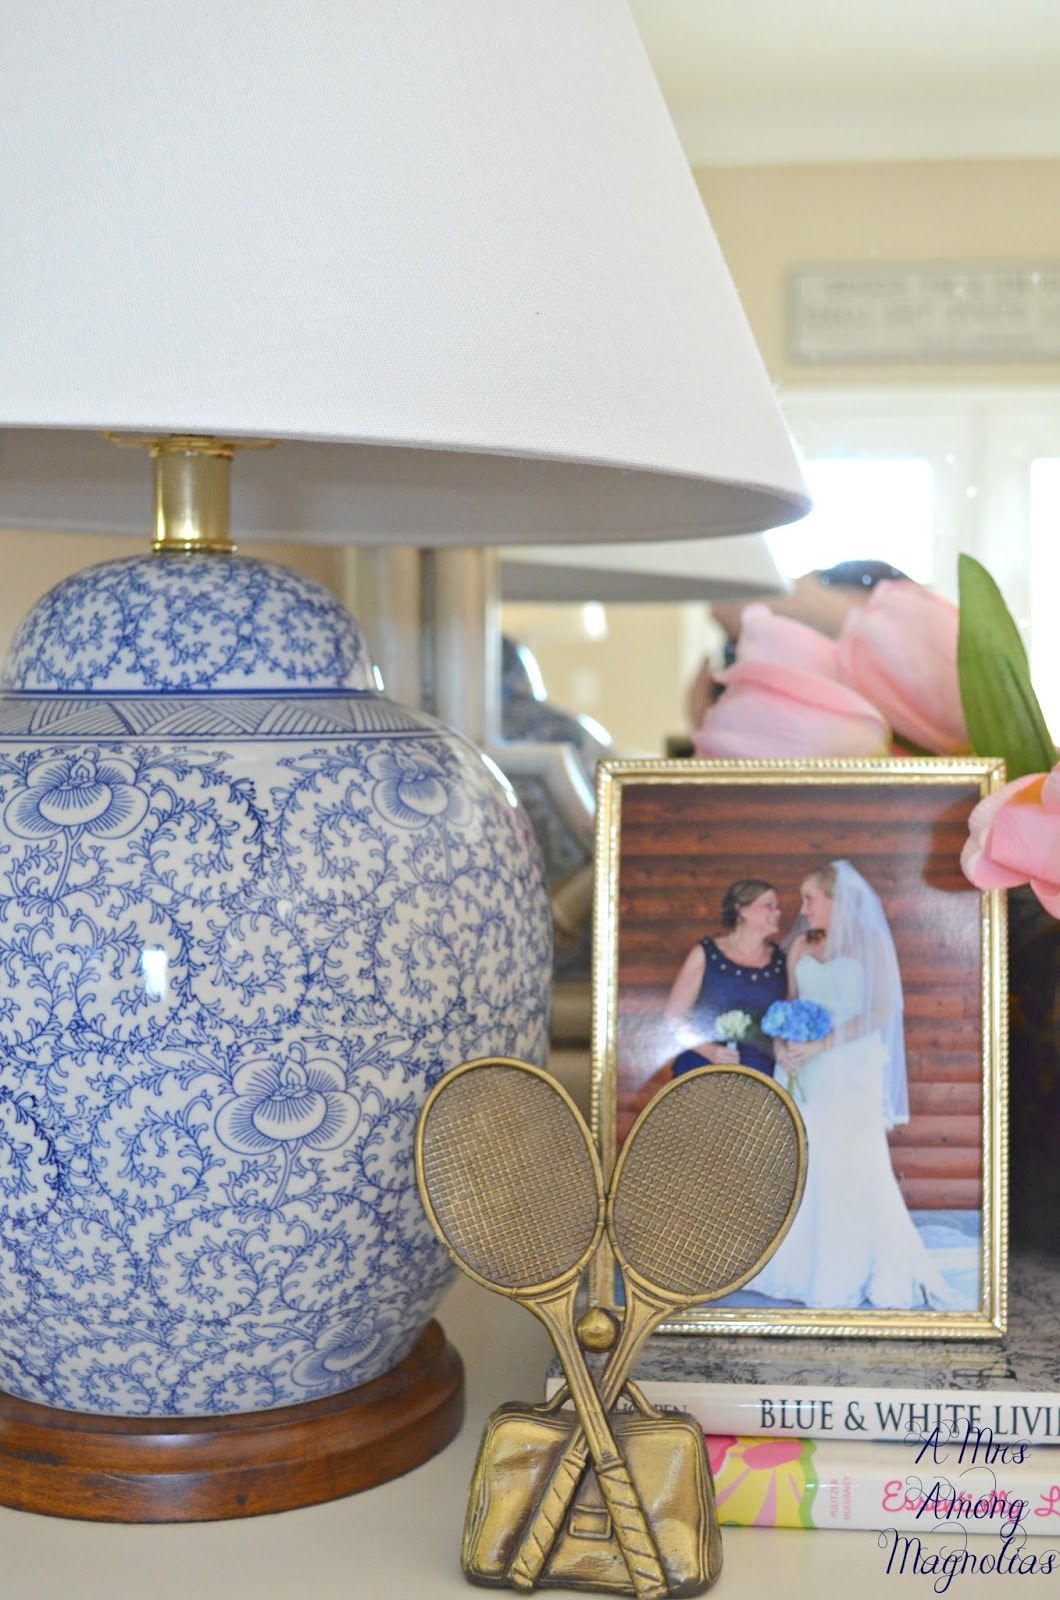 On The Hunt Ralph Lauren Lamps A Mrs Among Magnolias,Baby Shower Decorations Girl Elephant